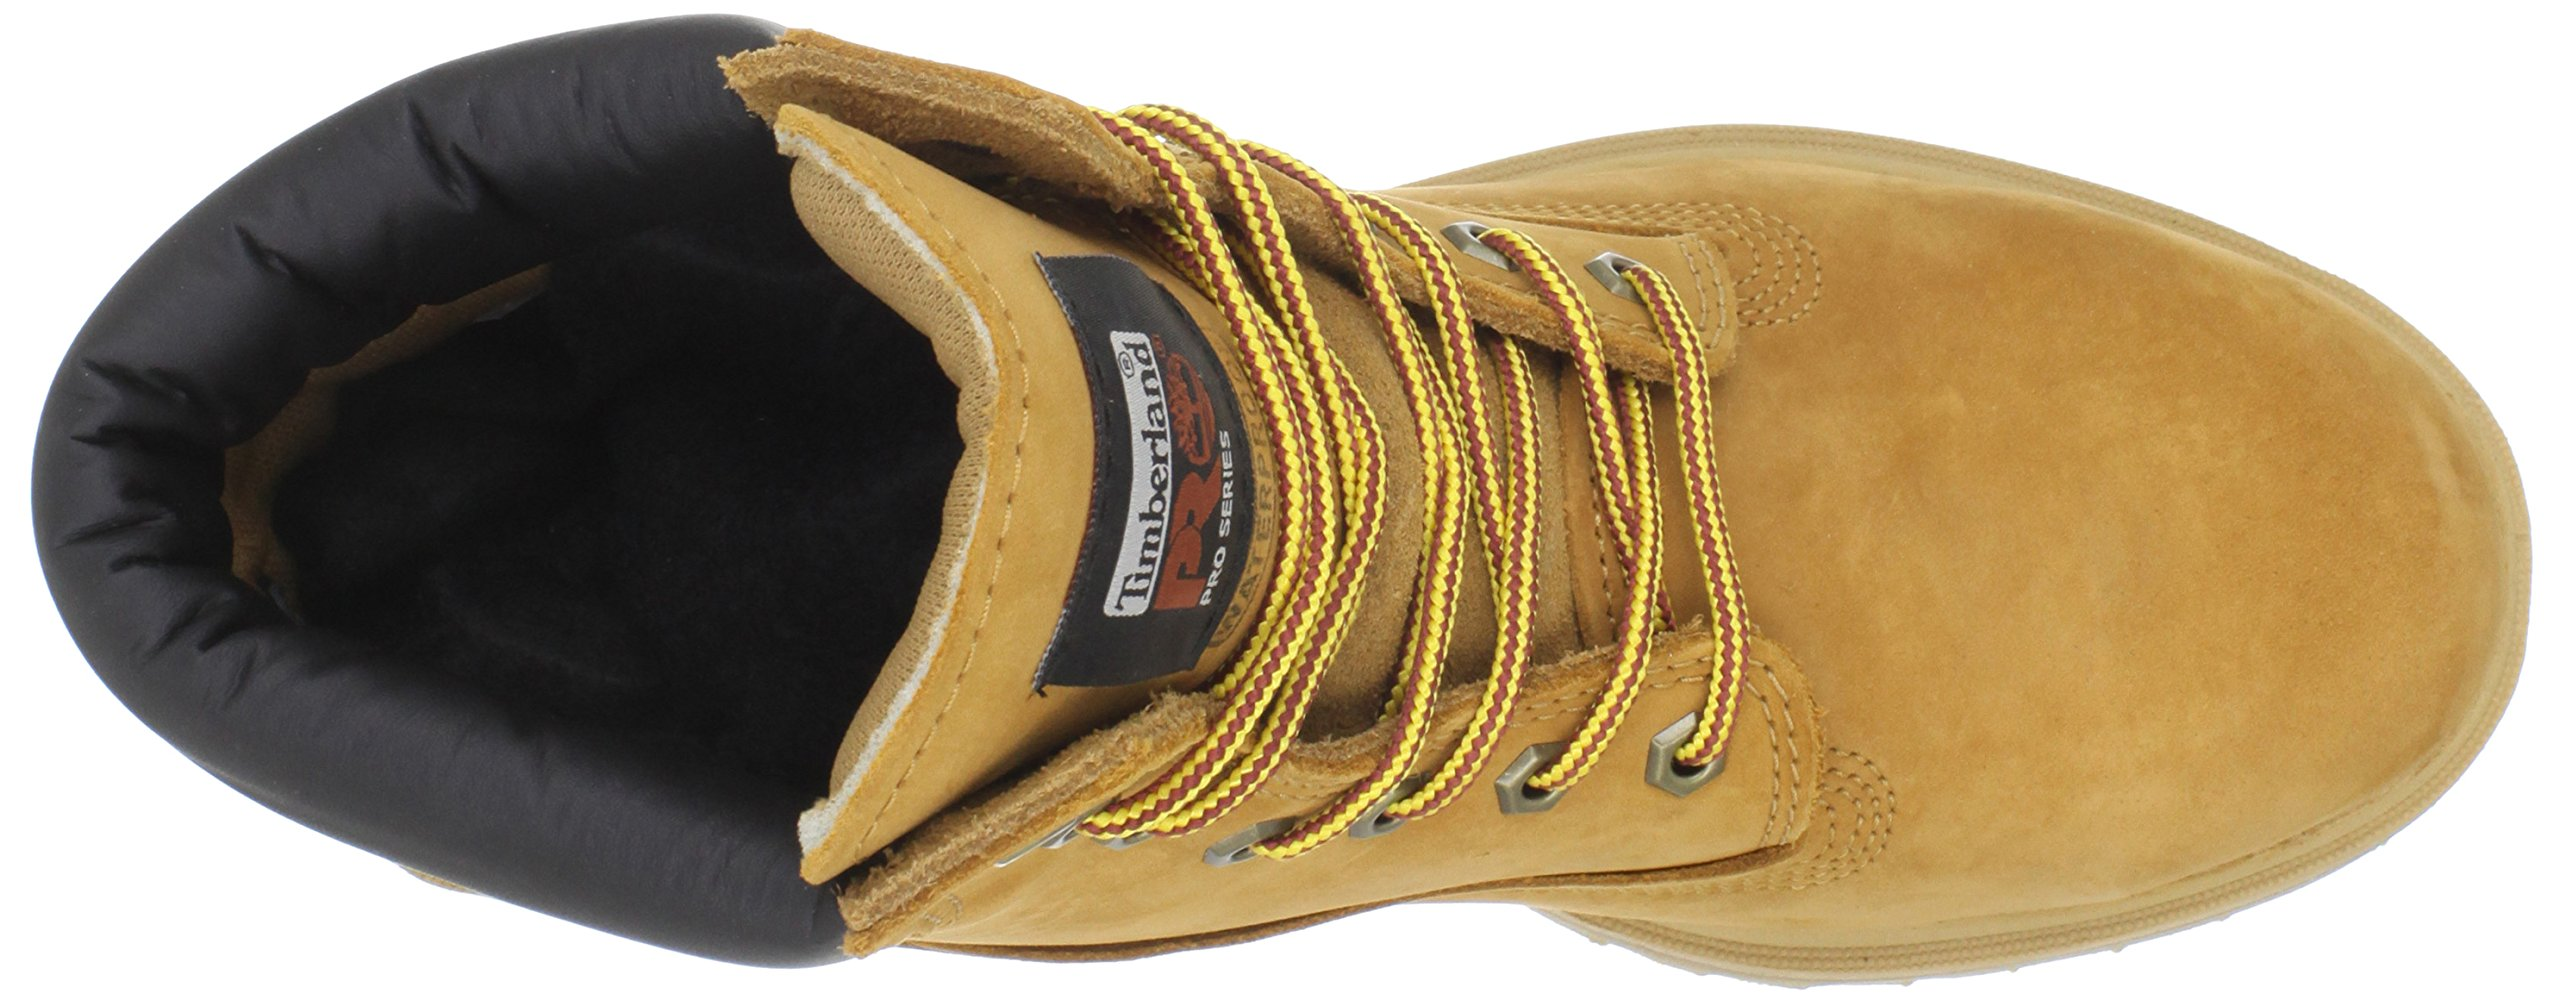 Timberland PRO Men's 65016 Direct Attach 6'' Steel Toe Boot,Yellow,9.5 W by Timberland PRO (Image #8)